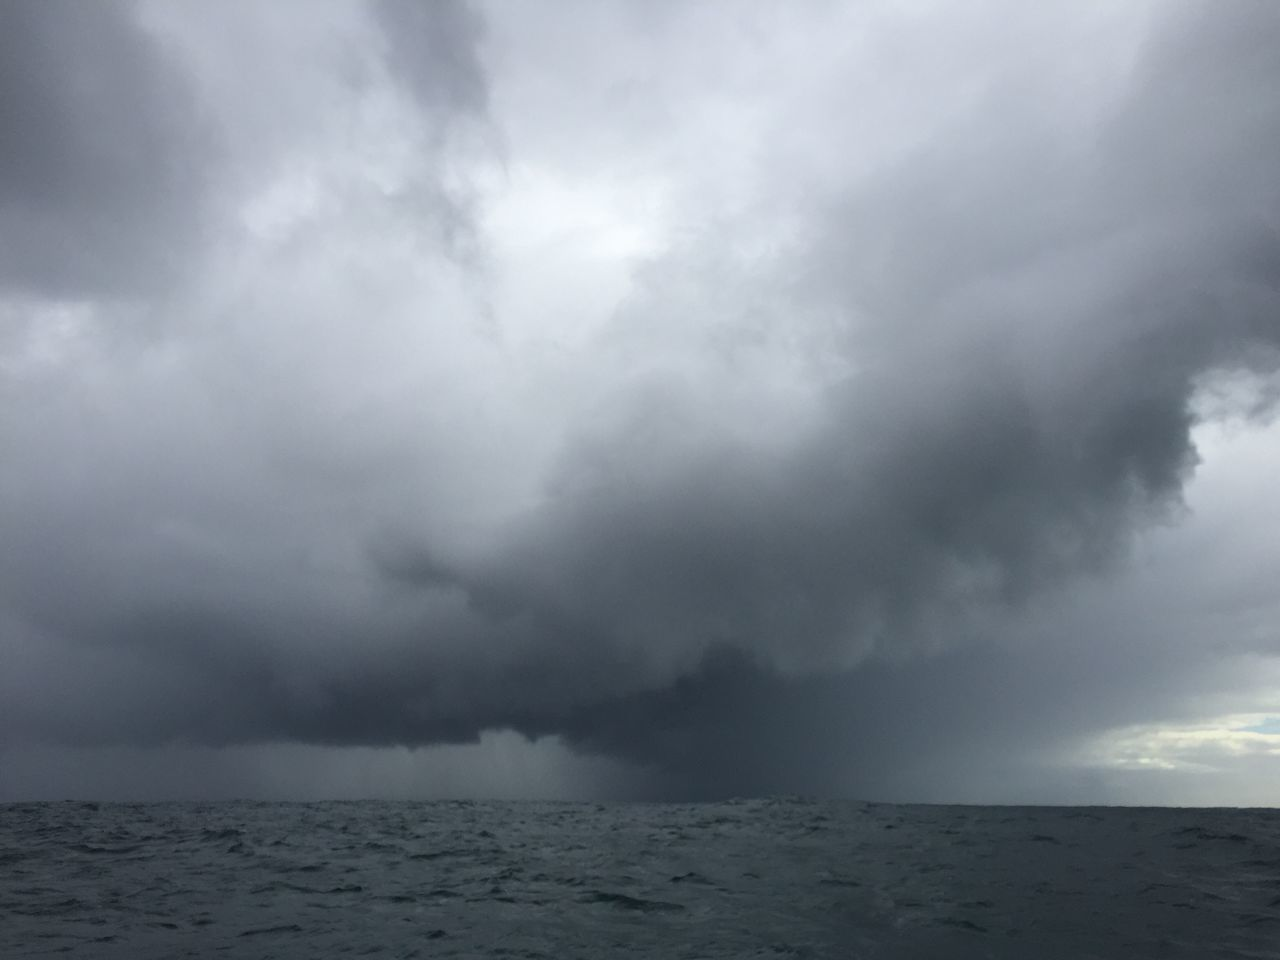 STORM CLOUDS OVER SEA AGAINST CLOUDY SKY